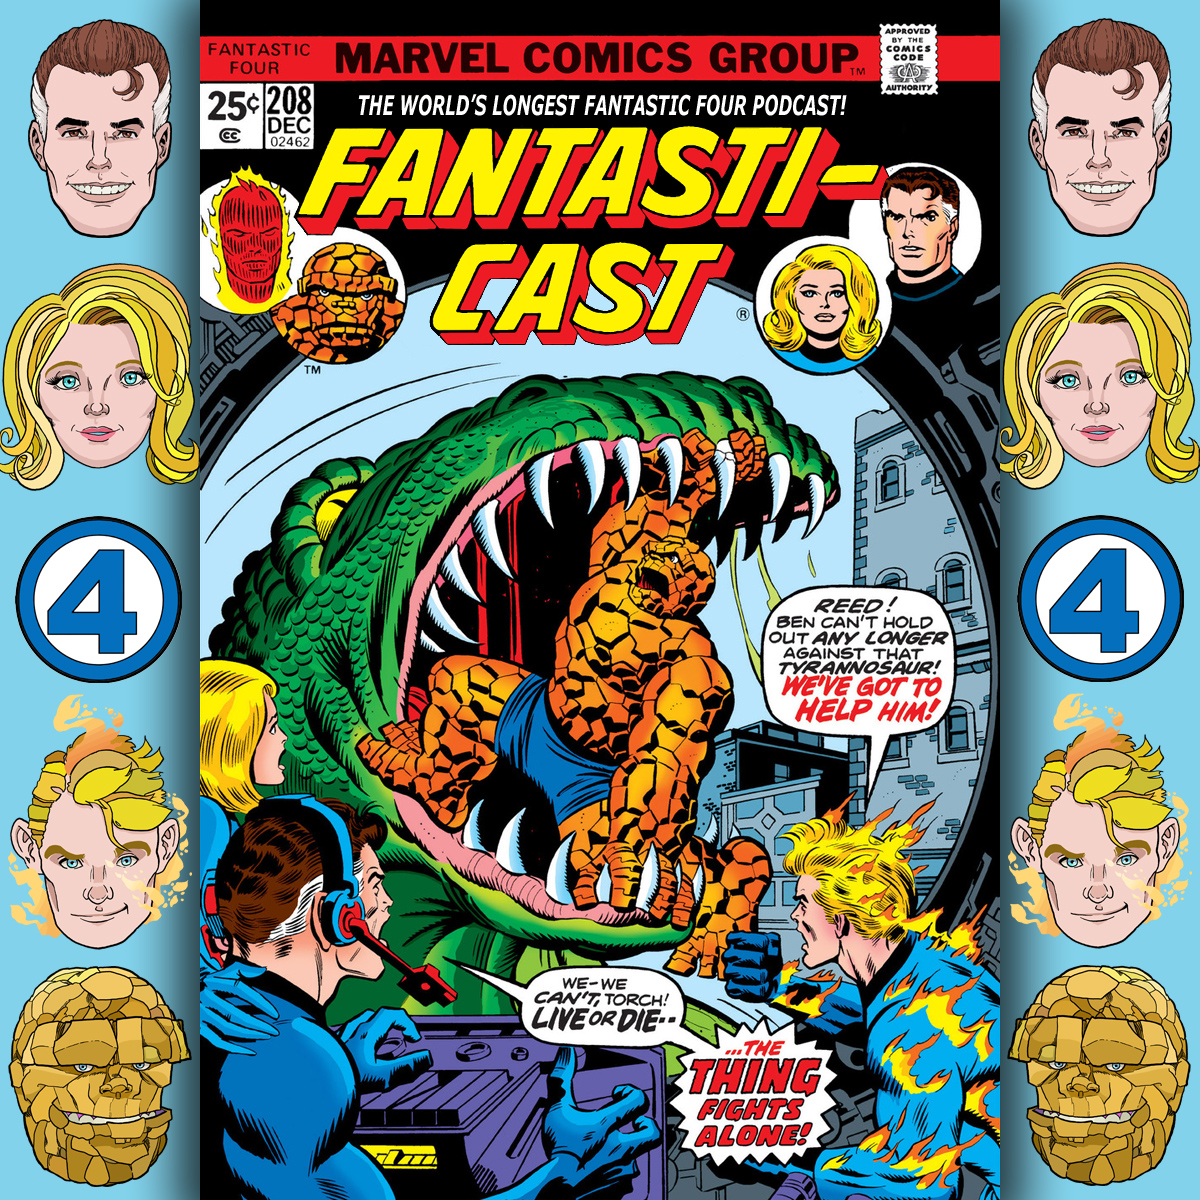 The Fantasticast Episode 208